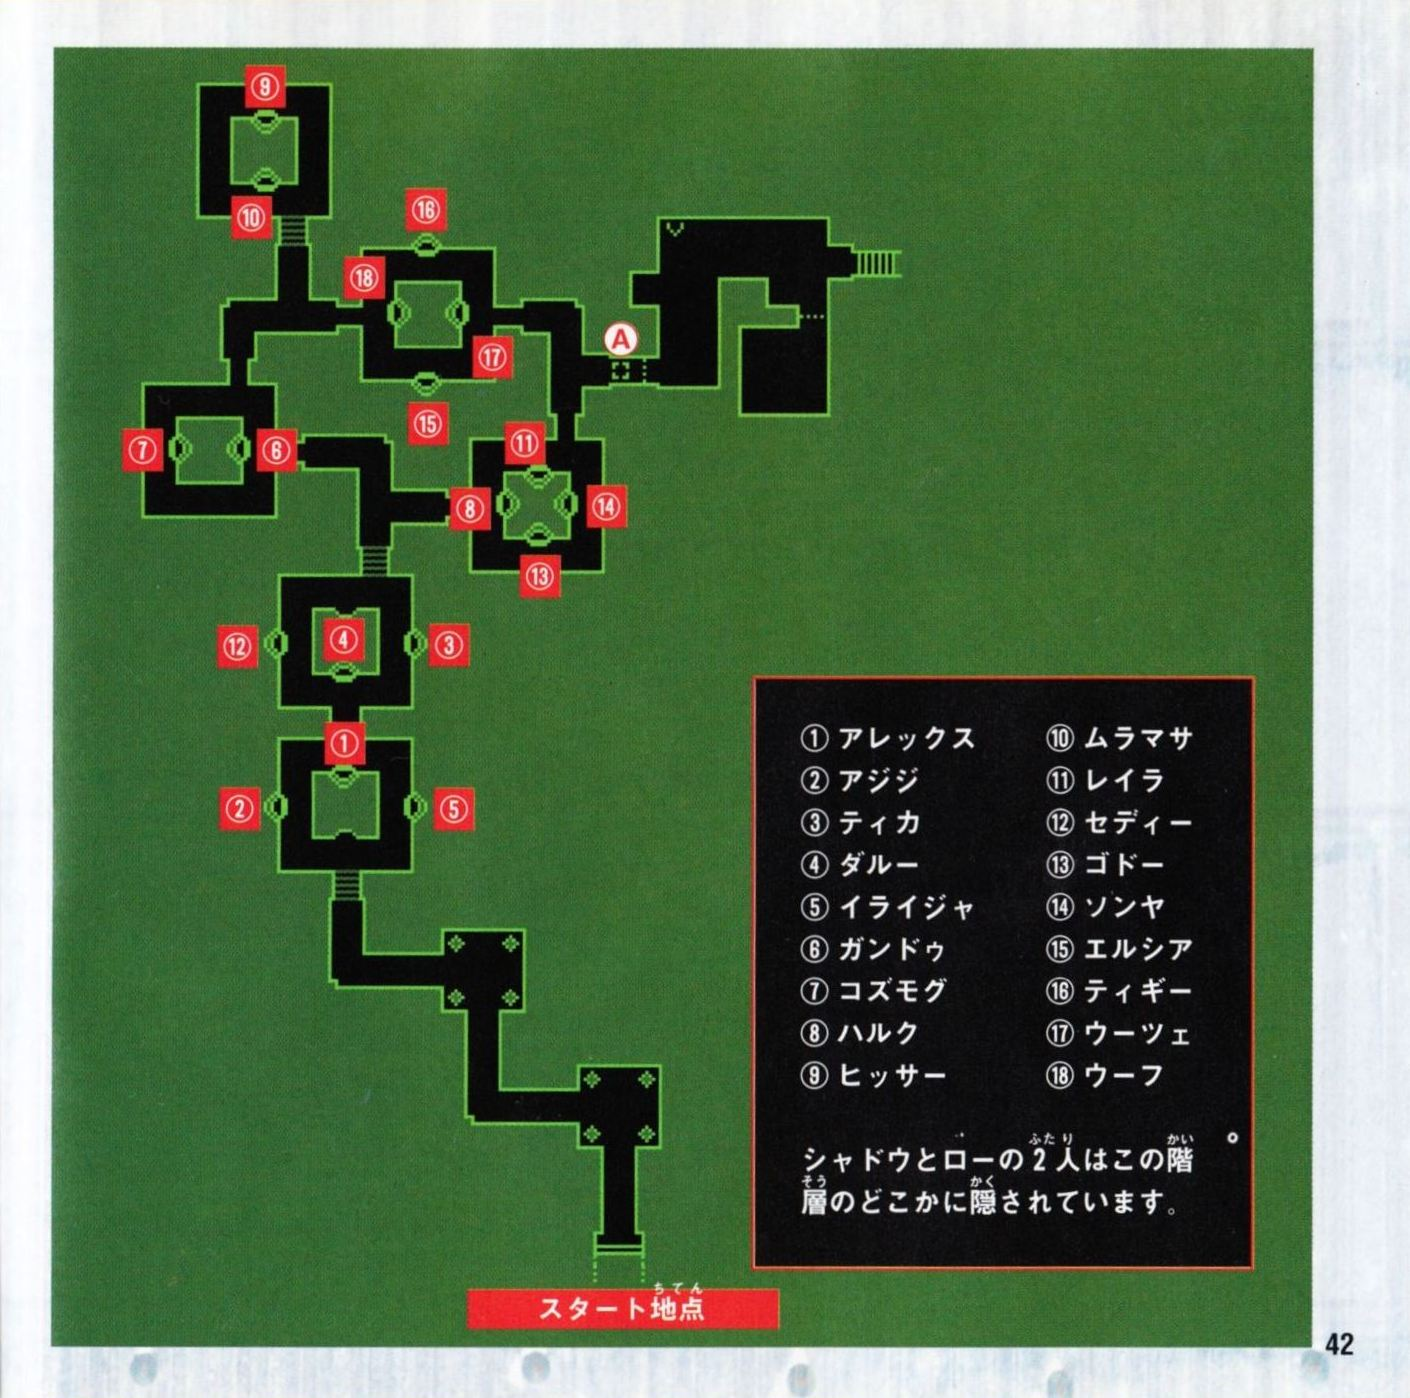 Game - Dungeon Master Nexus - JP - Sega Saturn - Booklet - Page 043 - Scan